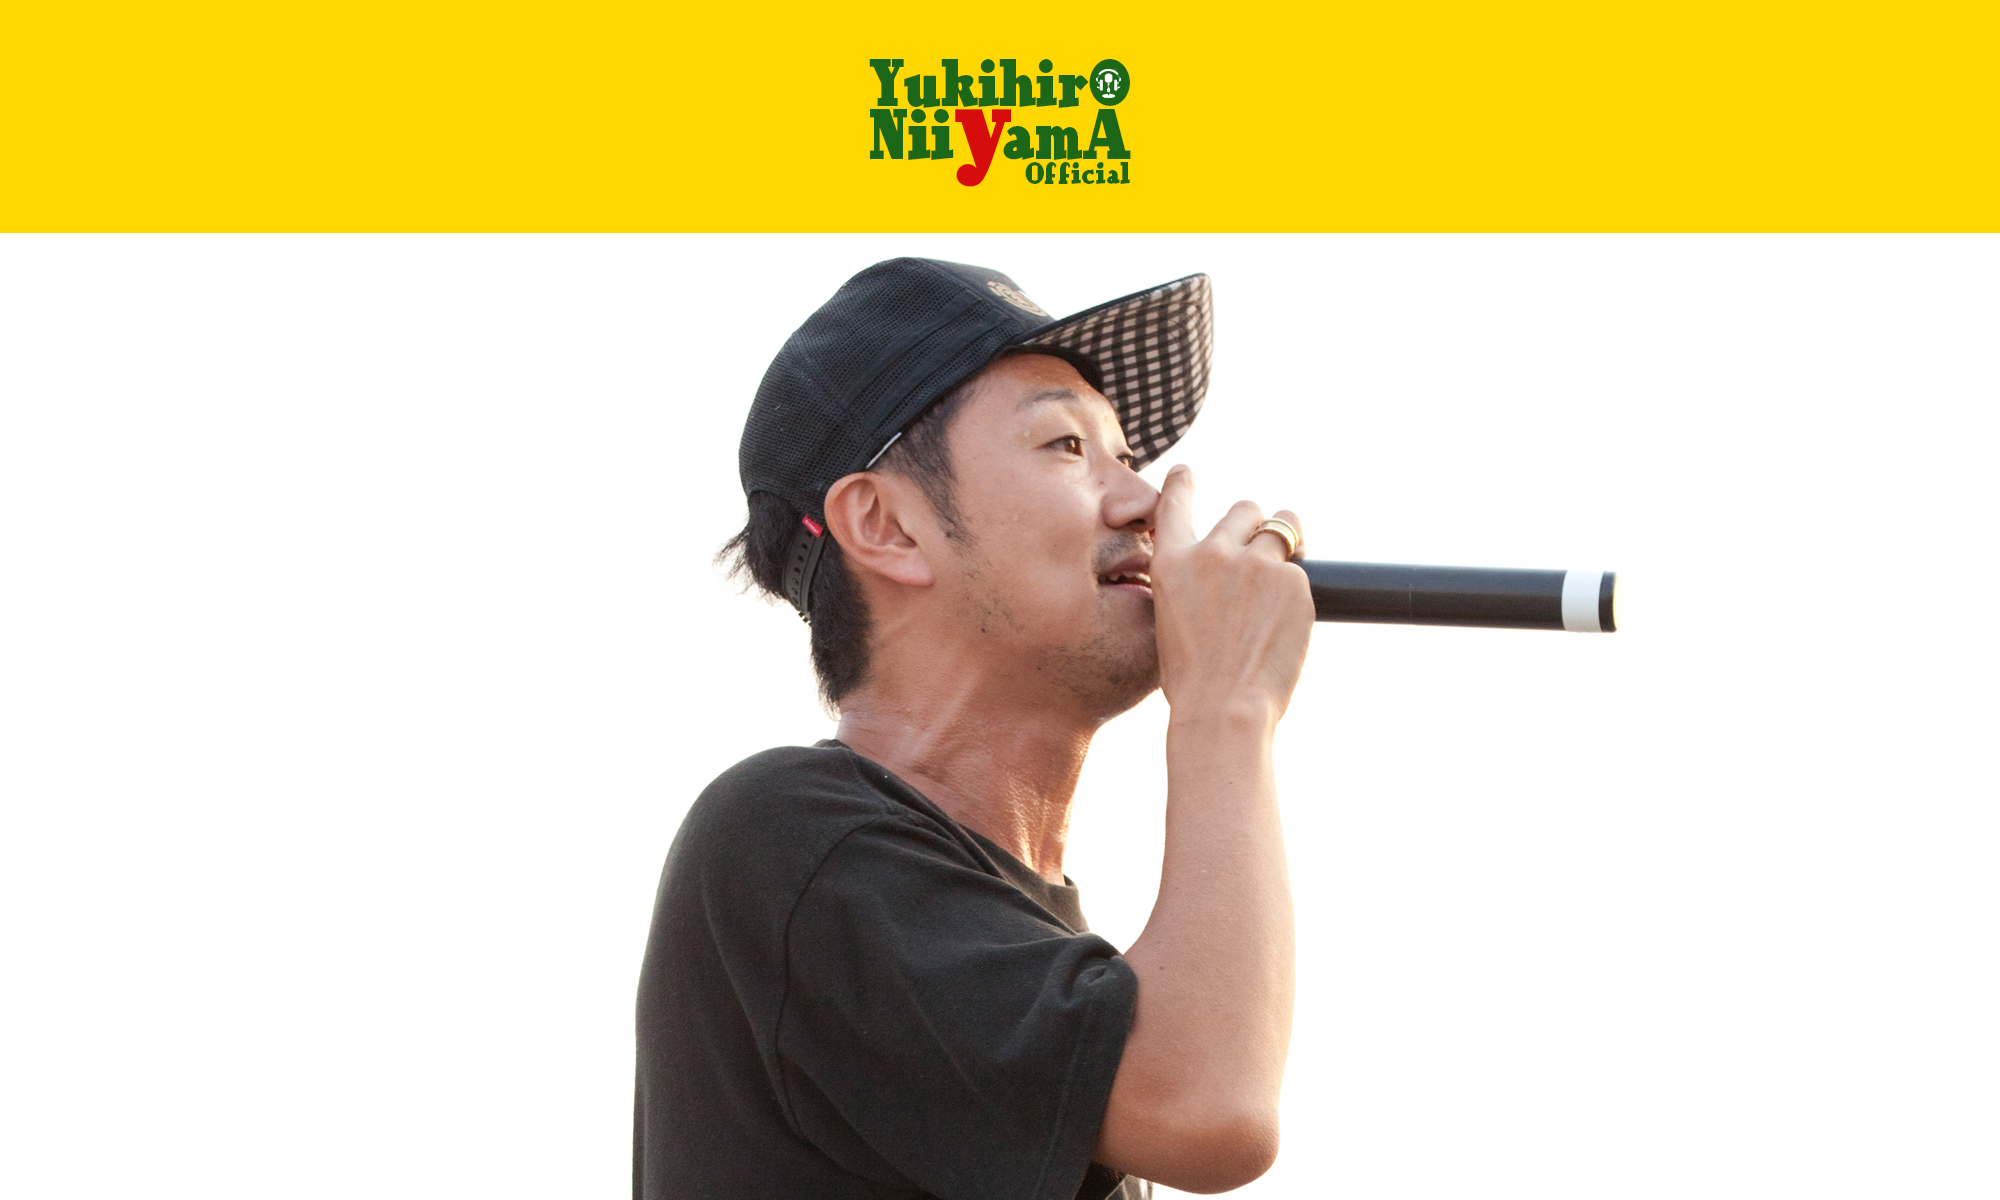 仁井山征弘Official Web Site